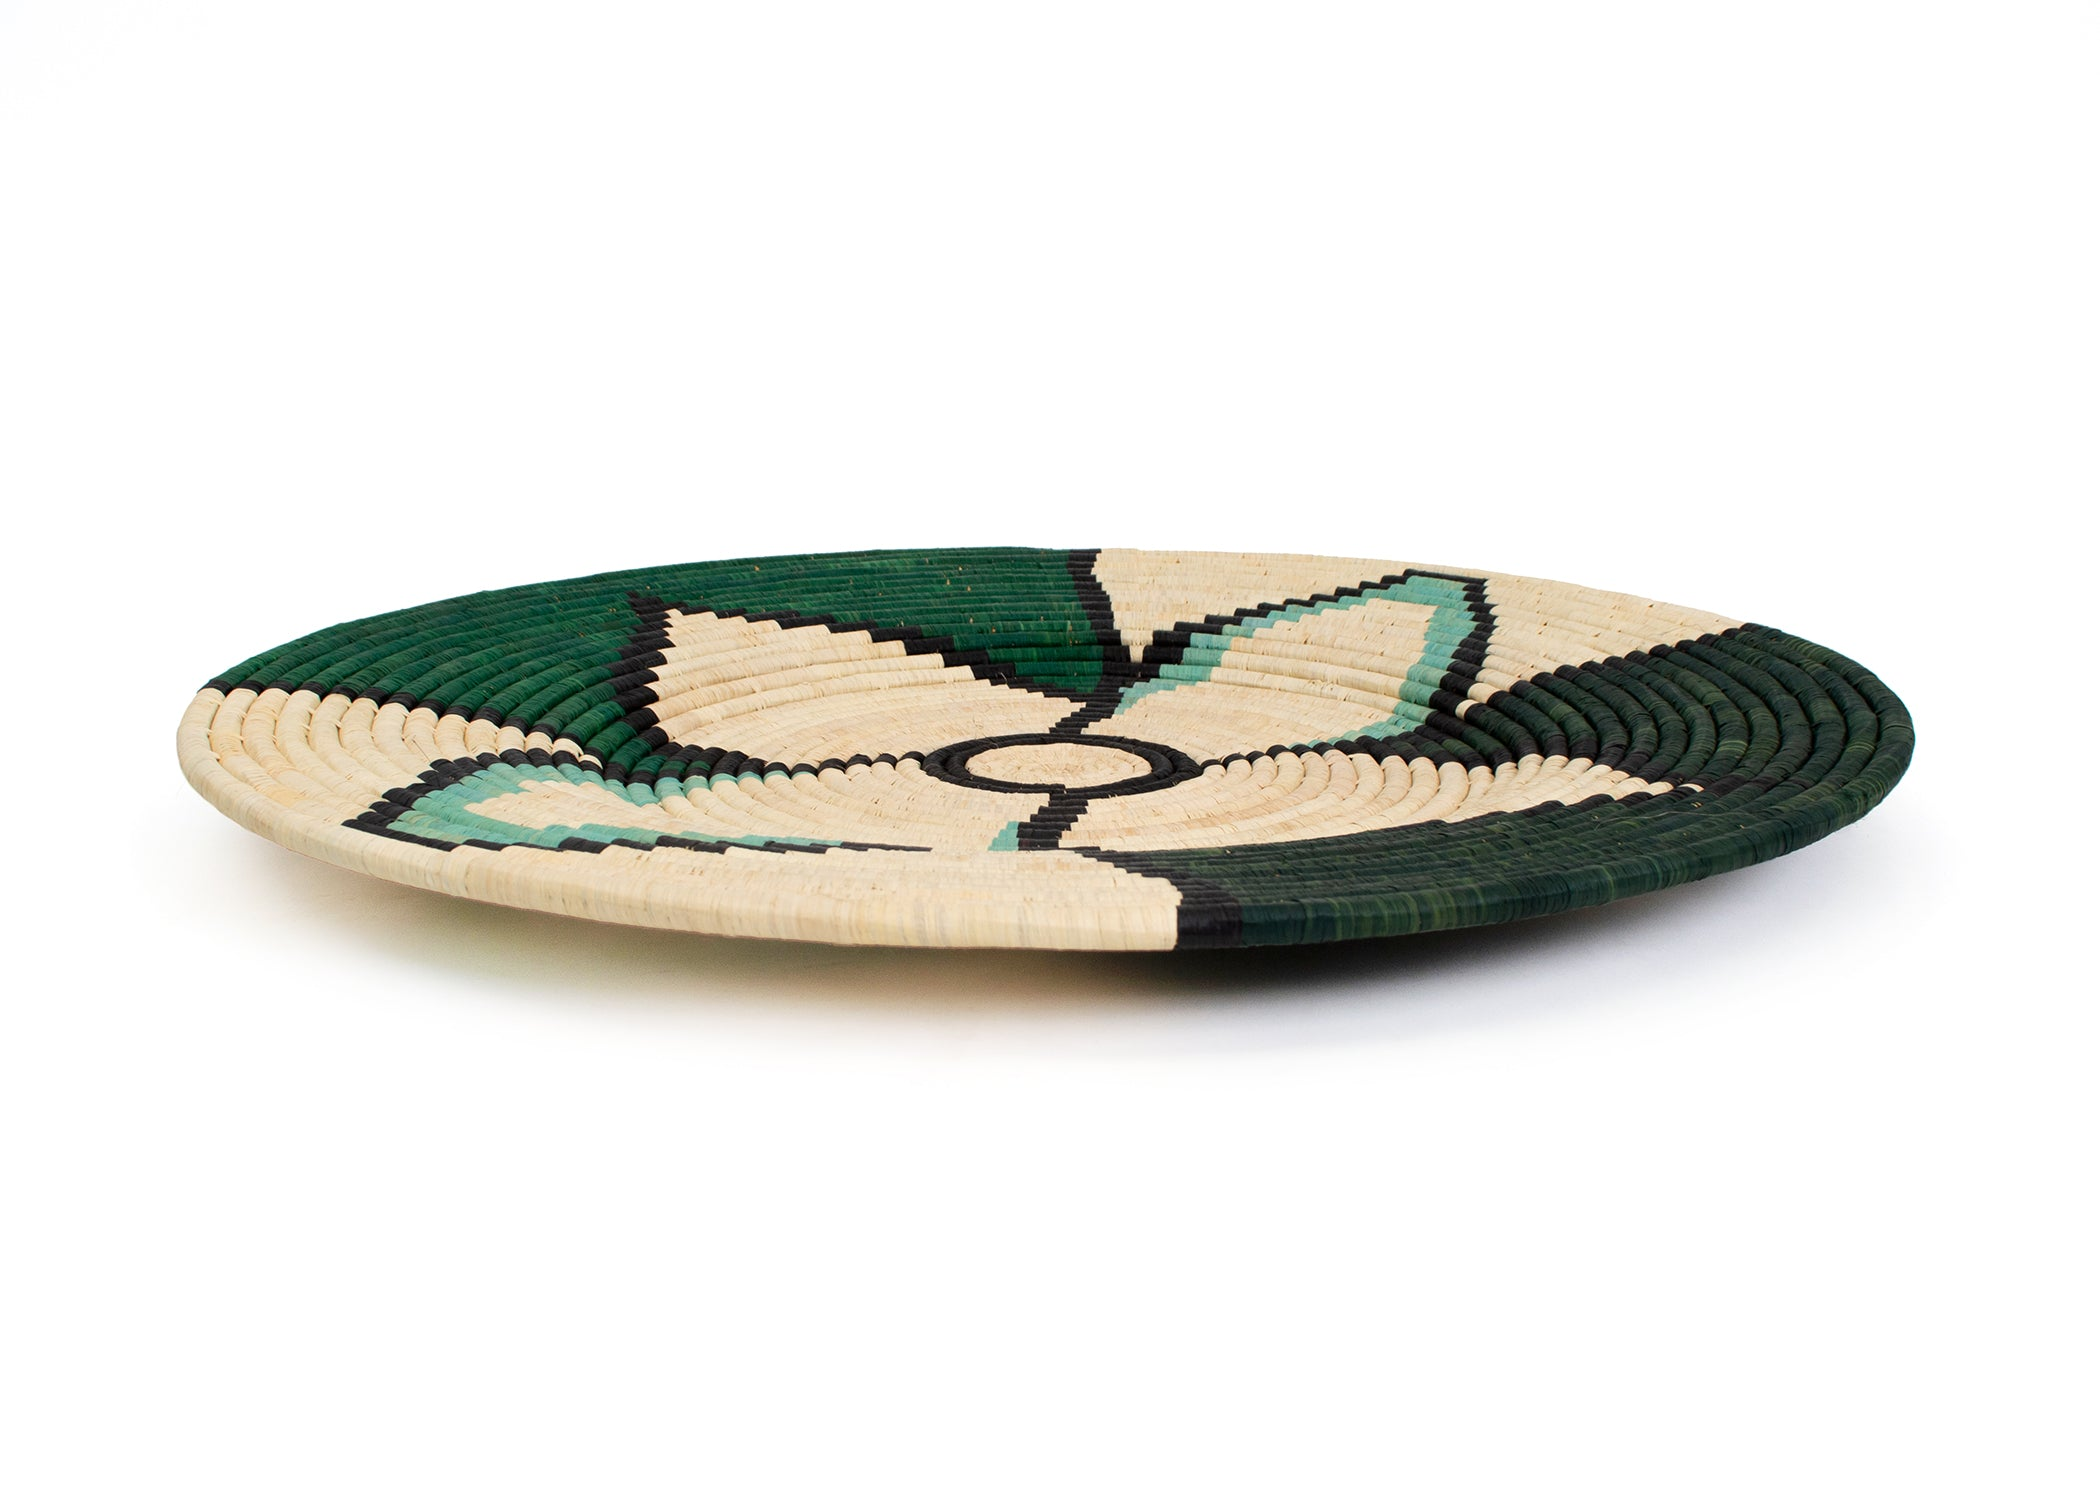 "27"" Extra Large Brea Forest Bud Woven Wall Art Plate - KAZI - Artisan made high quality home decor and wall art"